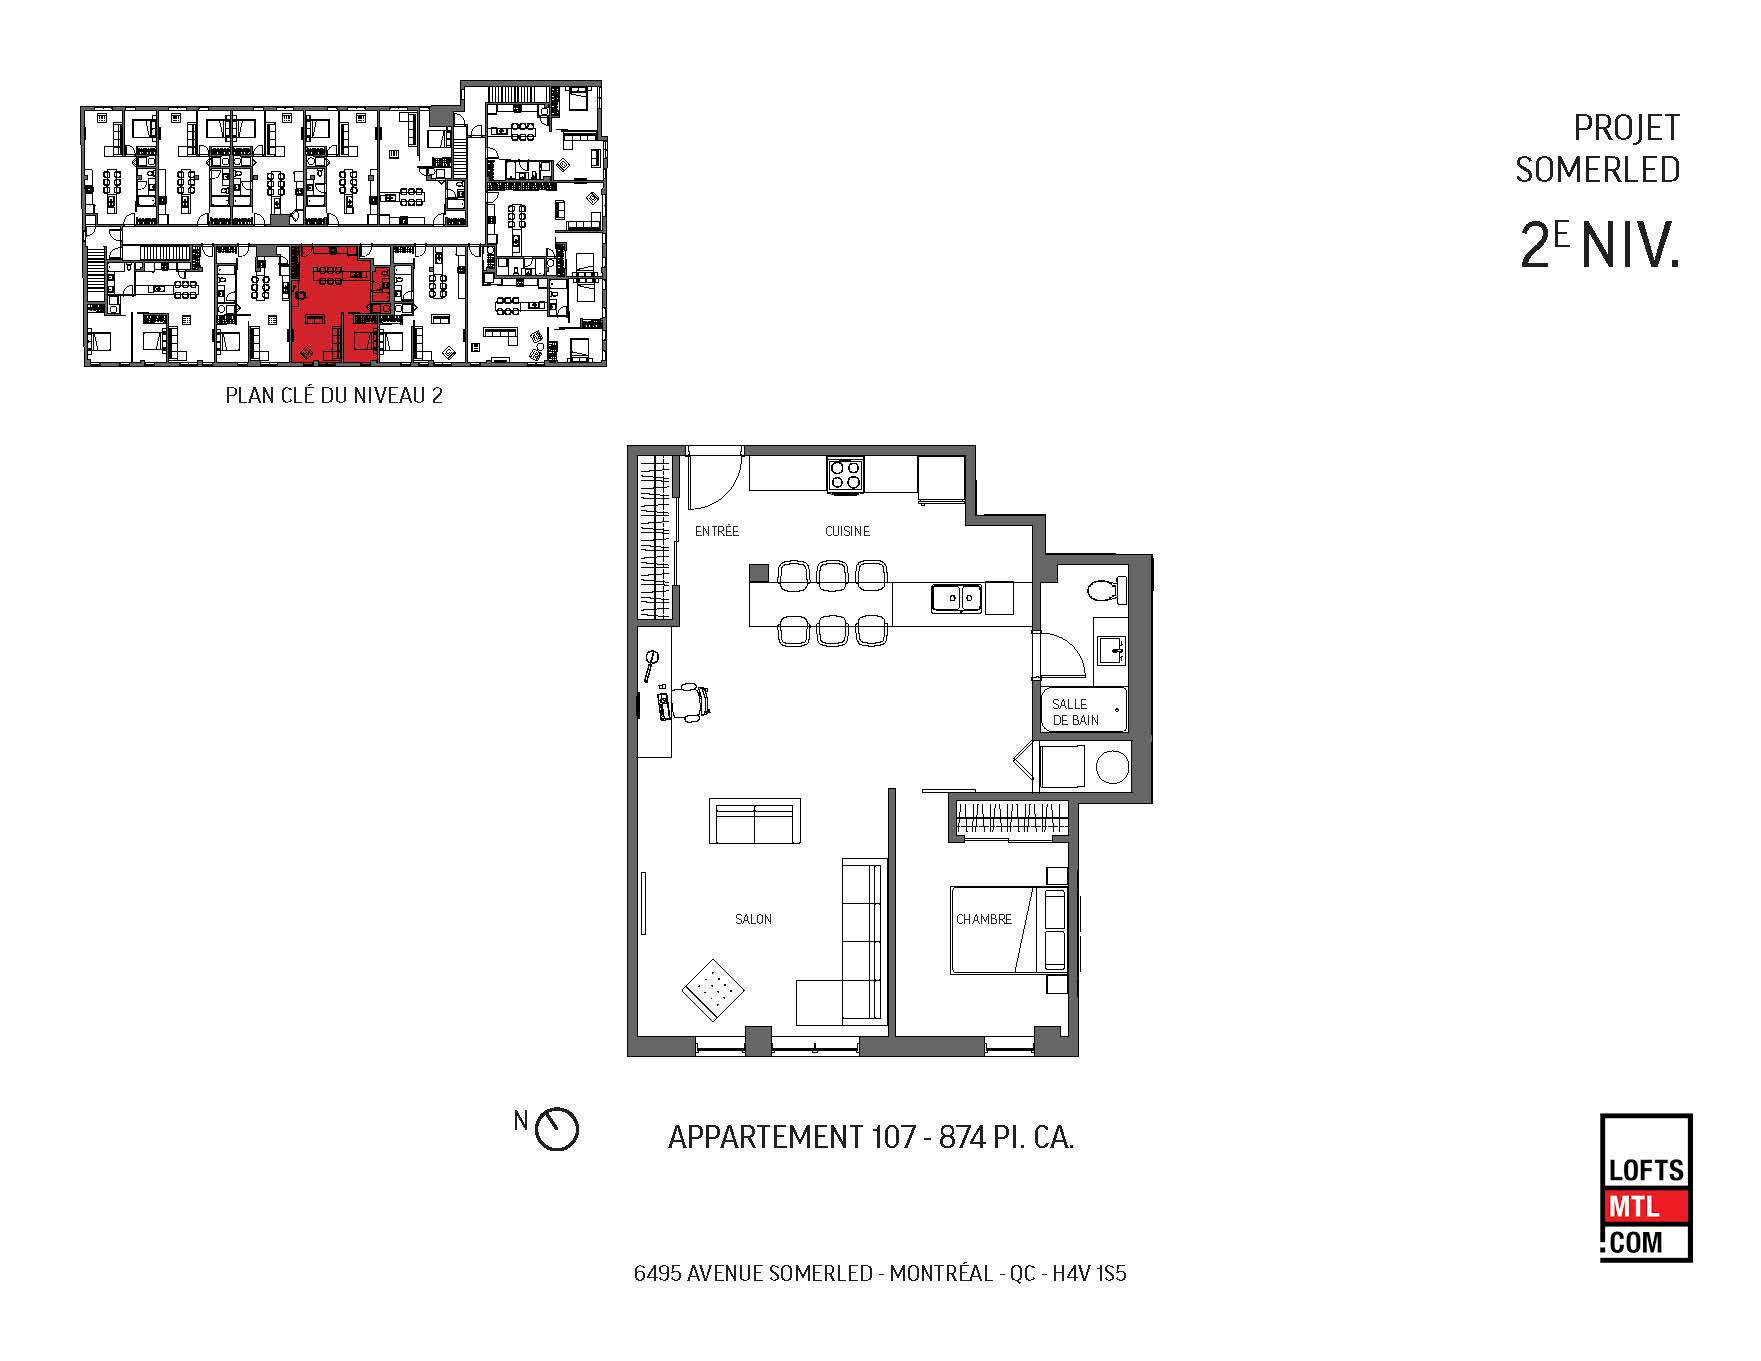 Plans appartements vectoriel Somerled_Page_07.jpg